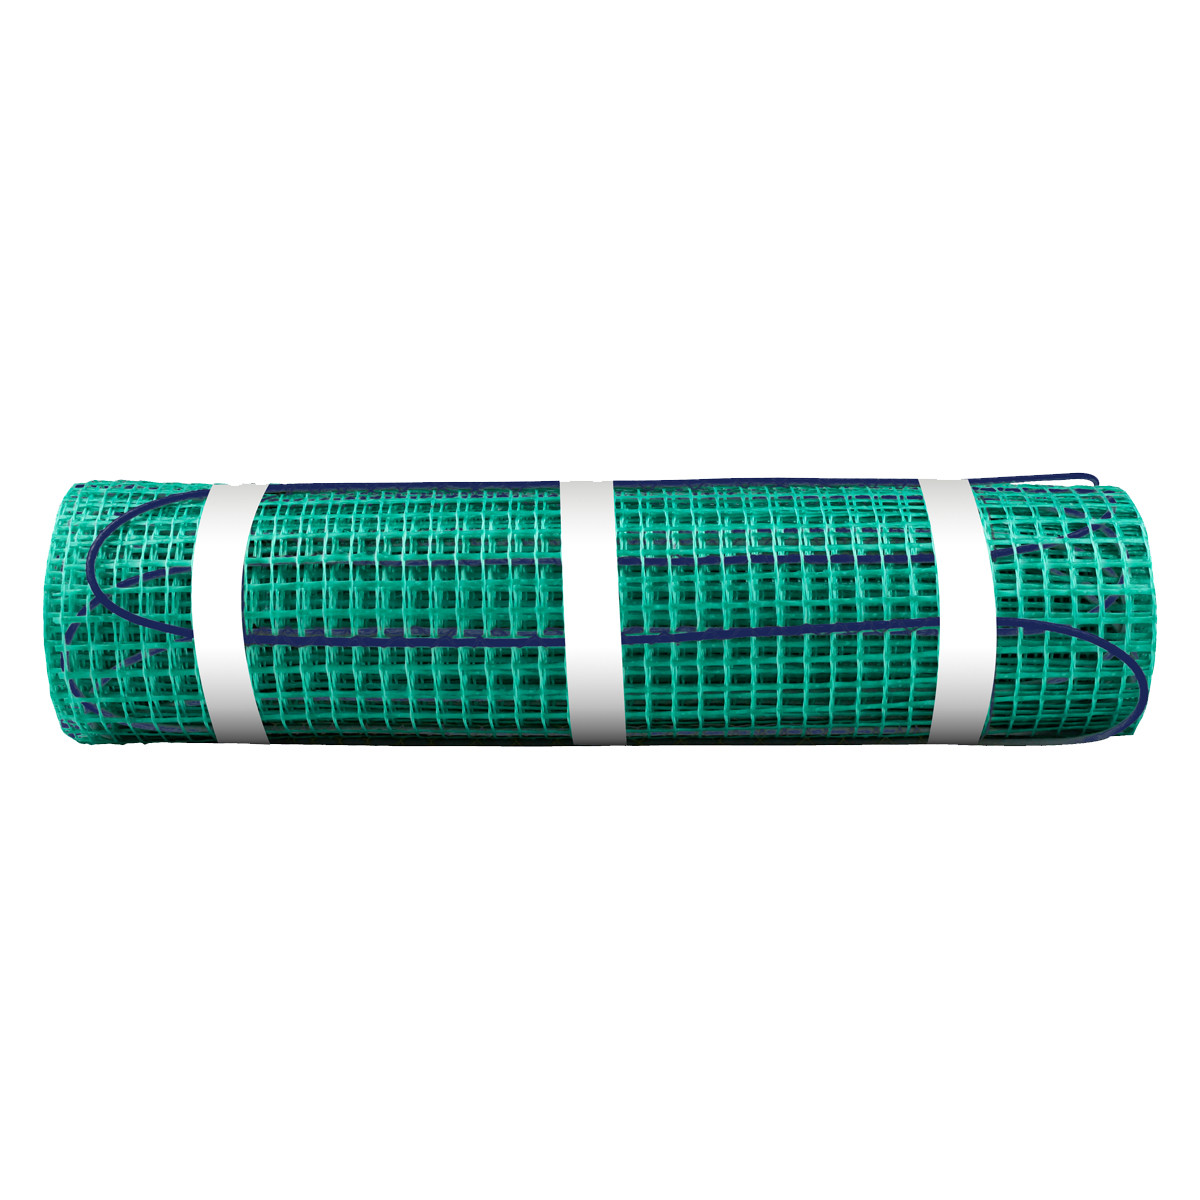 Warmly Yours  41 Sq.ft 120 Volts Electric Floor Heating Flex Roll - For under tile, stone, hardwood and LVT flooring